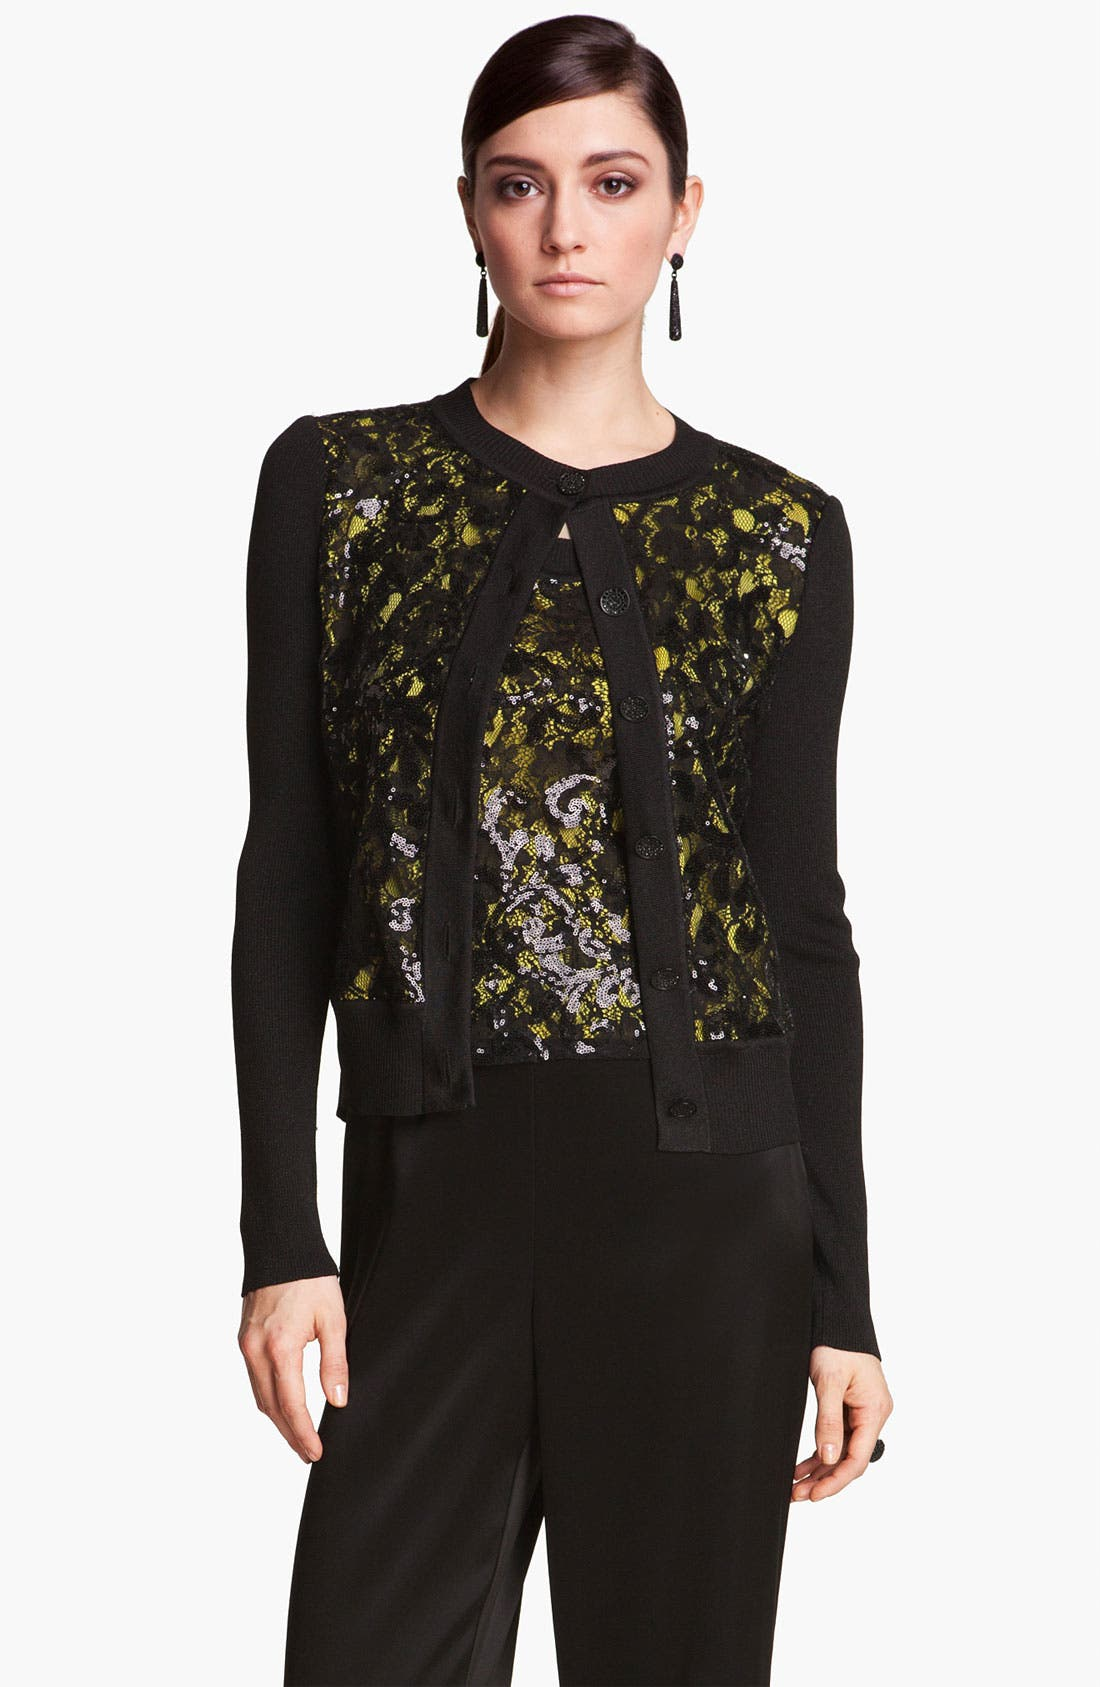 Main Image - St. John Collection Sequin Lace & Shimmer Knit Cardigan